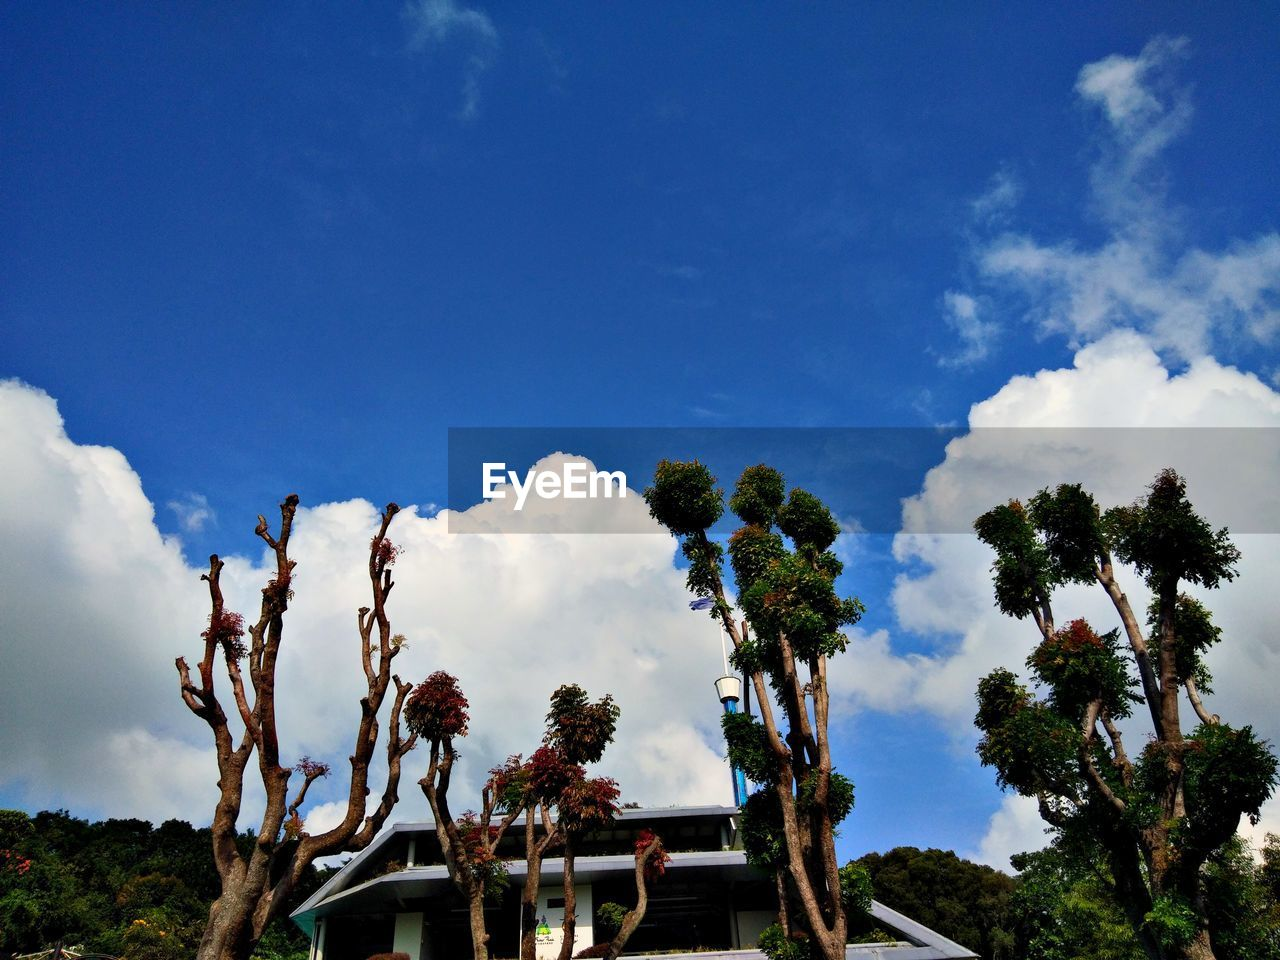 sky, cloud - sky, plant, tree, blue, nature, day, no people, beauty in nature, growth, tranquility, scenics - nature, low angle view, outdoors, transportation, land, tranquil scene, mode of transportation, land vehicle, environment